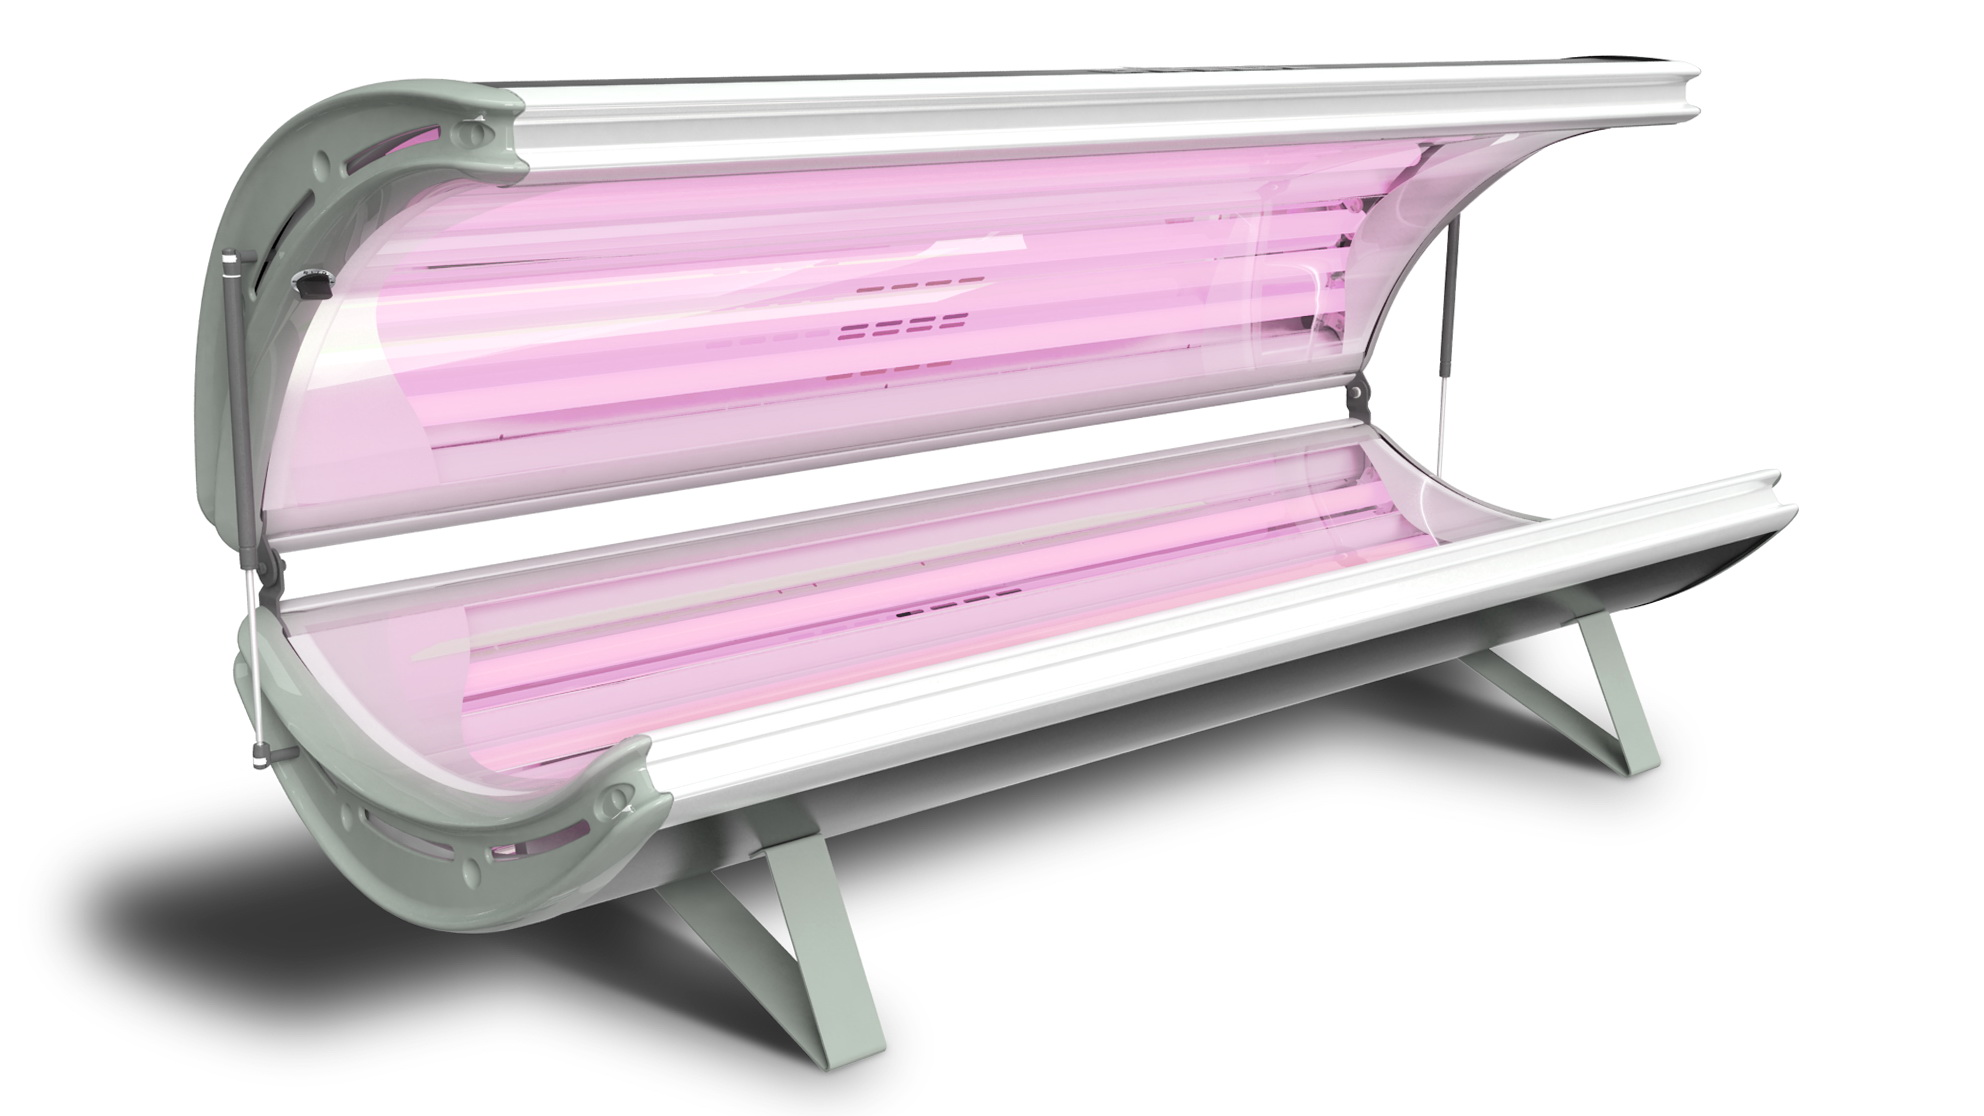 Wolff Tanning Beds For Home